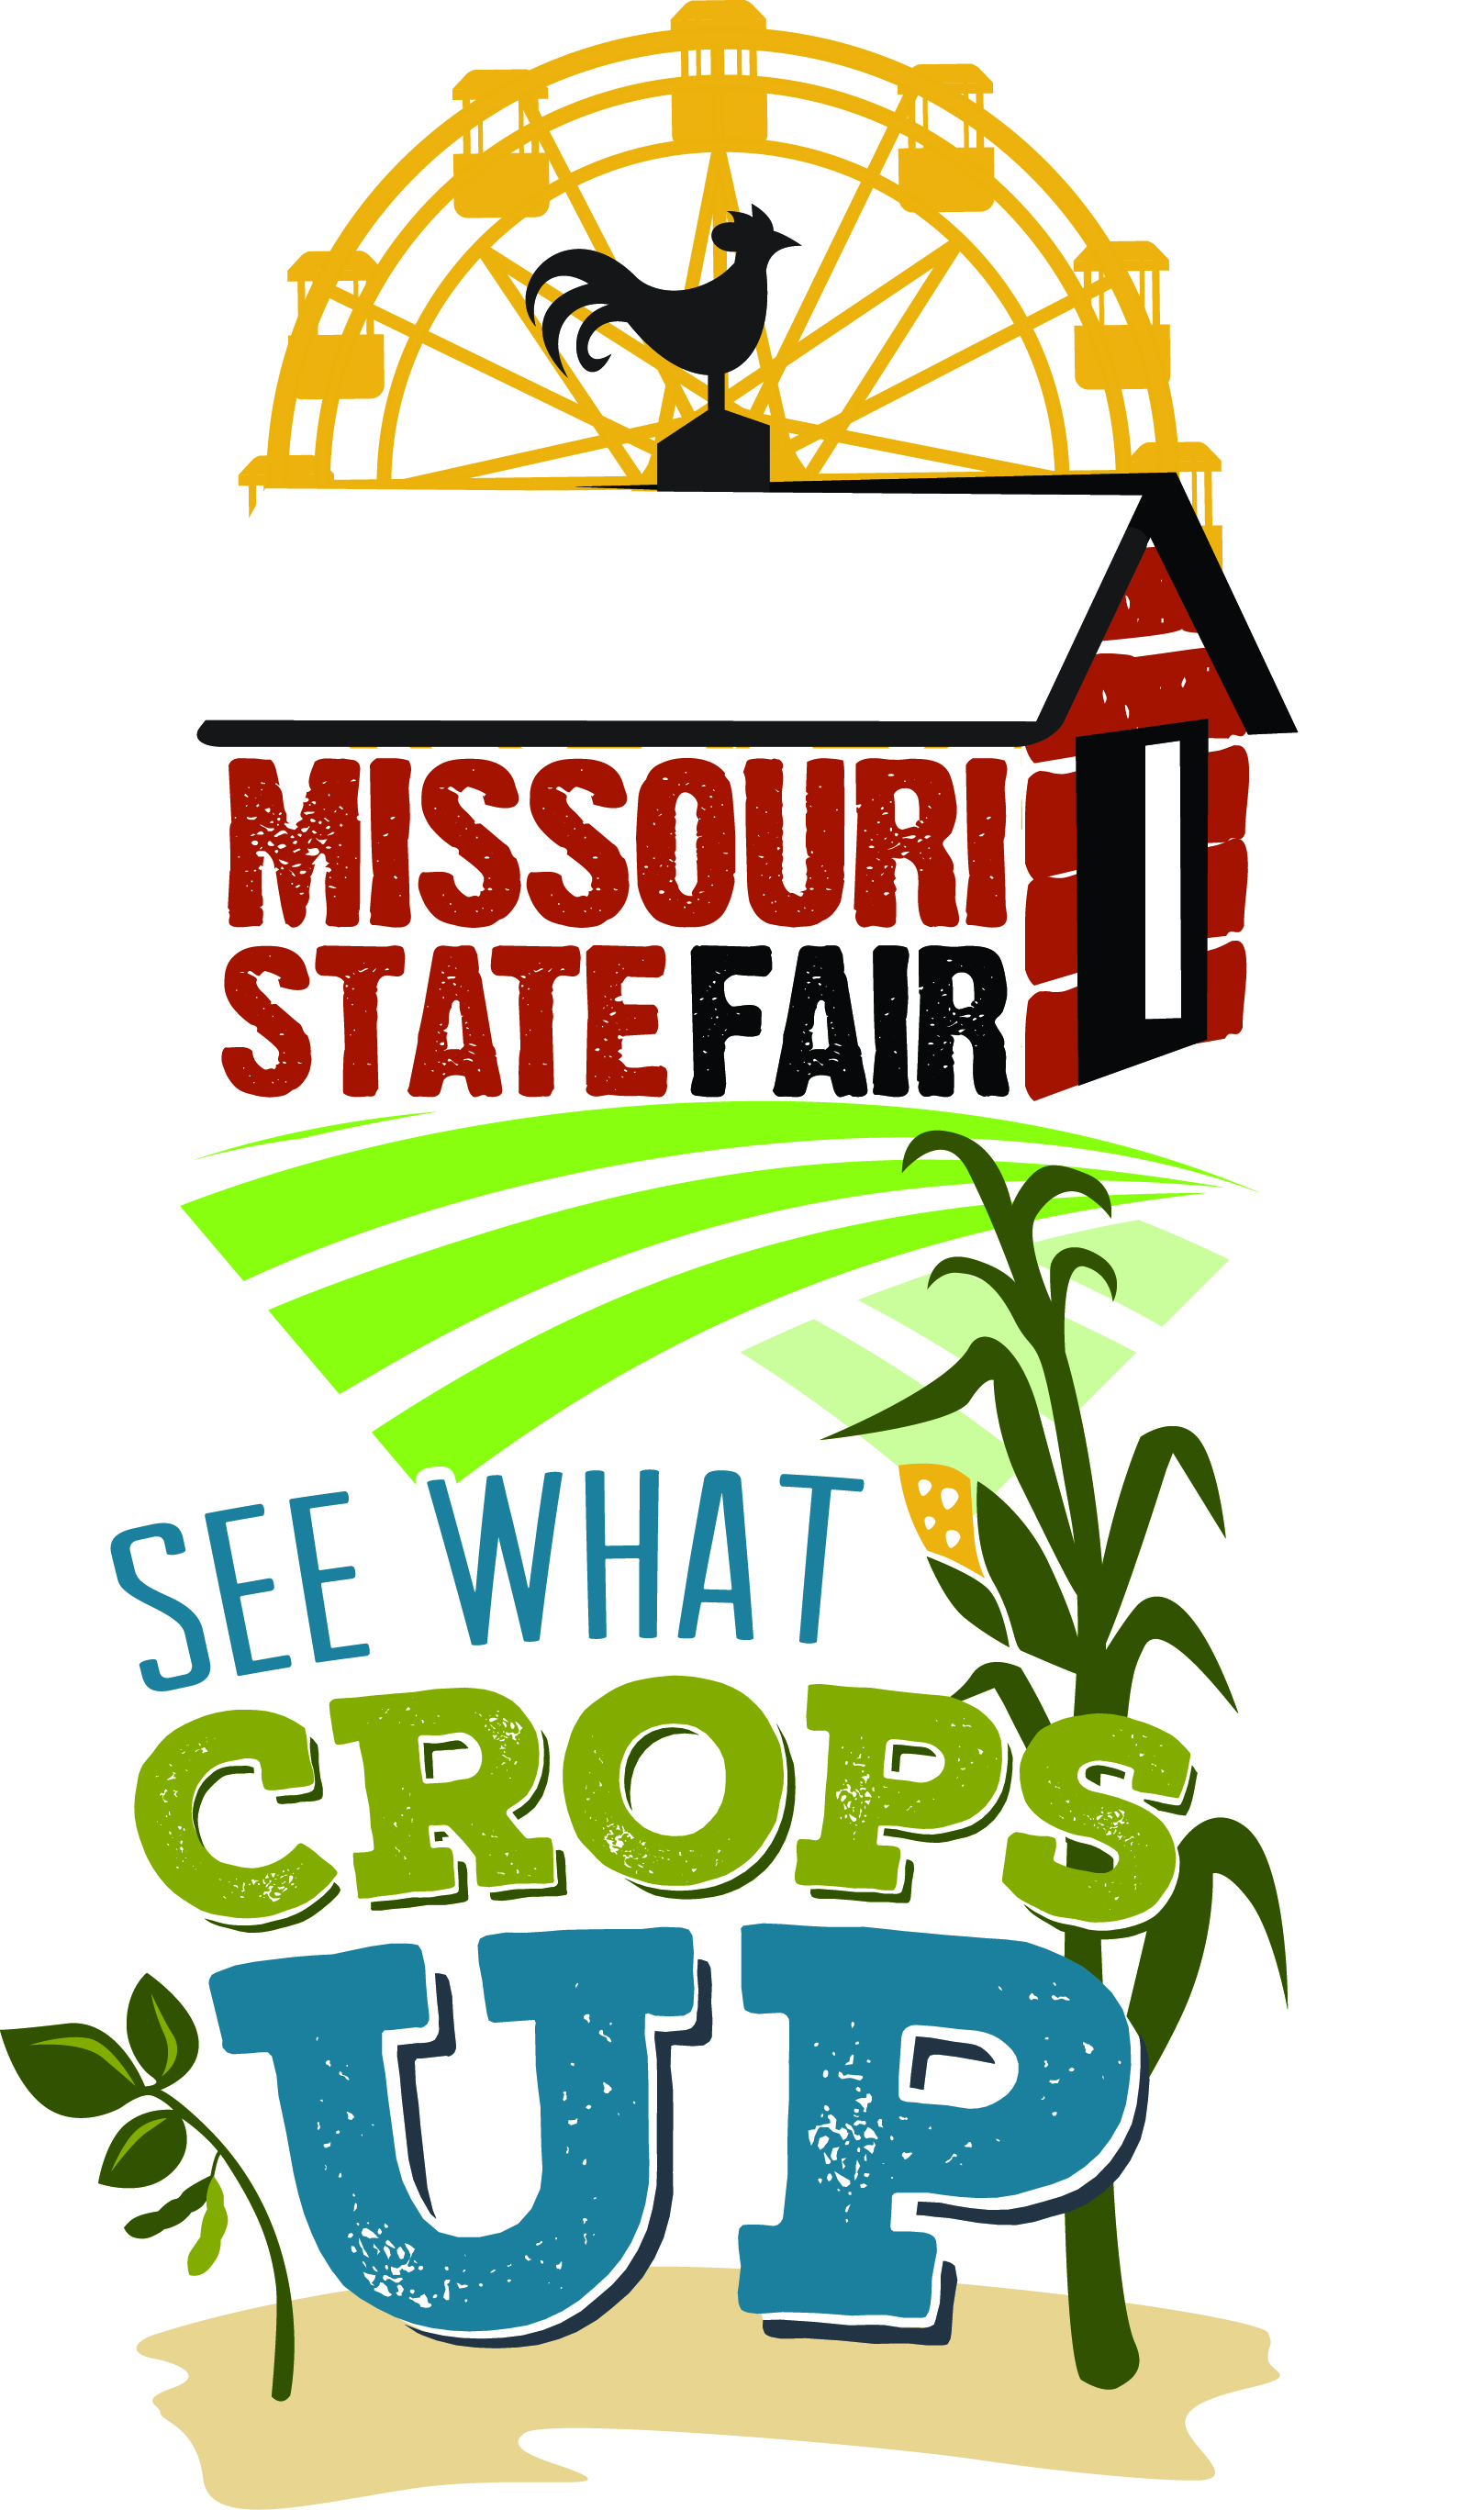 114th Missouri State Fair kicks off Thursday